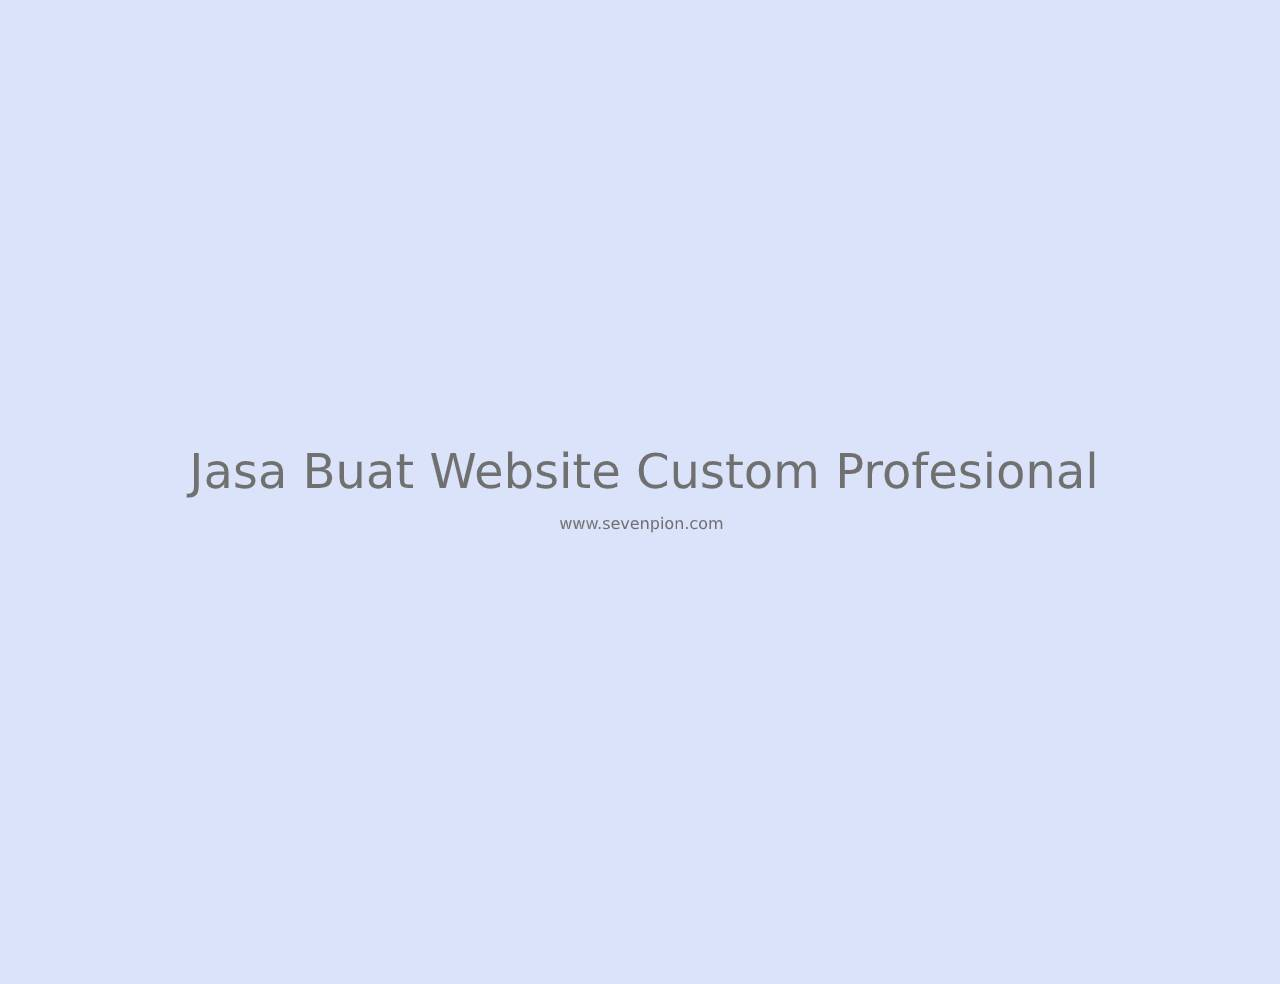 jasa buat website custom